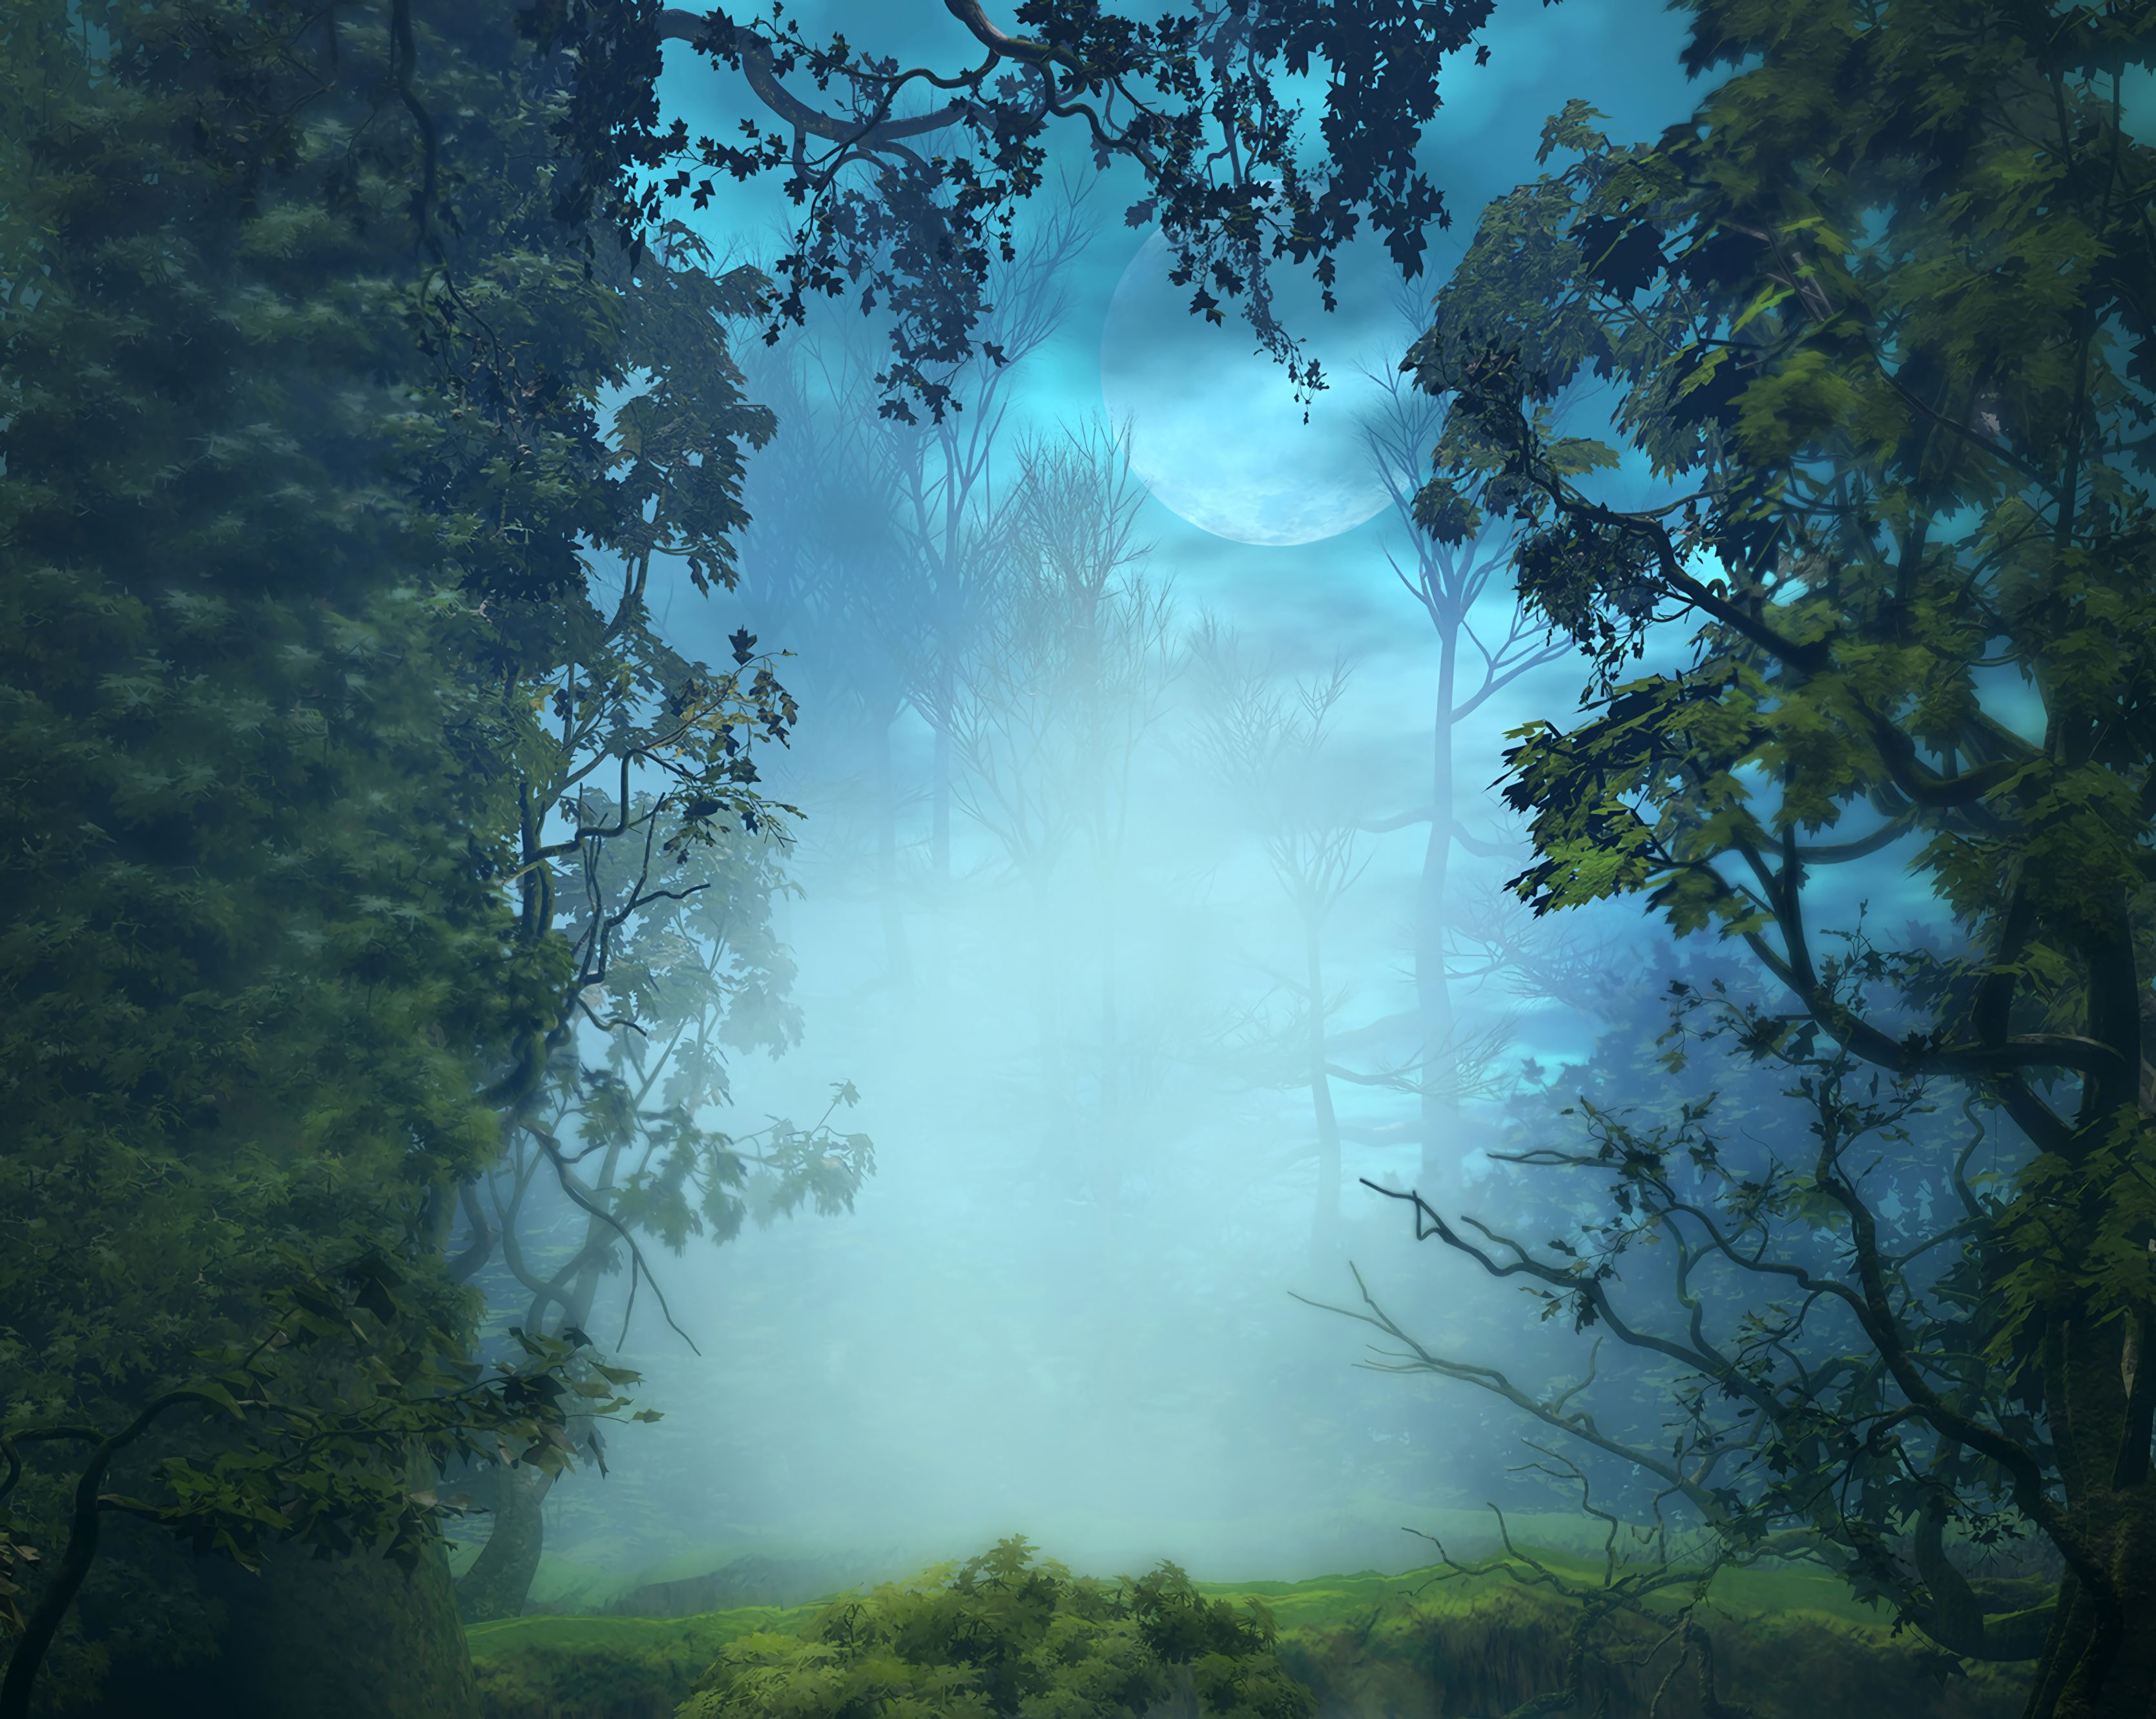 69657 download wallpaper Nature, Trees, Art, Forest, Fog, Branches screensavers and pictures for free